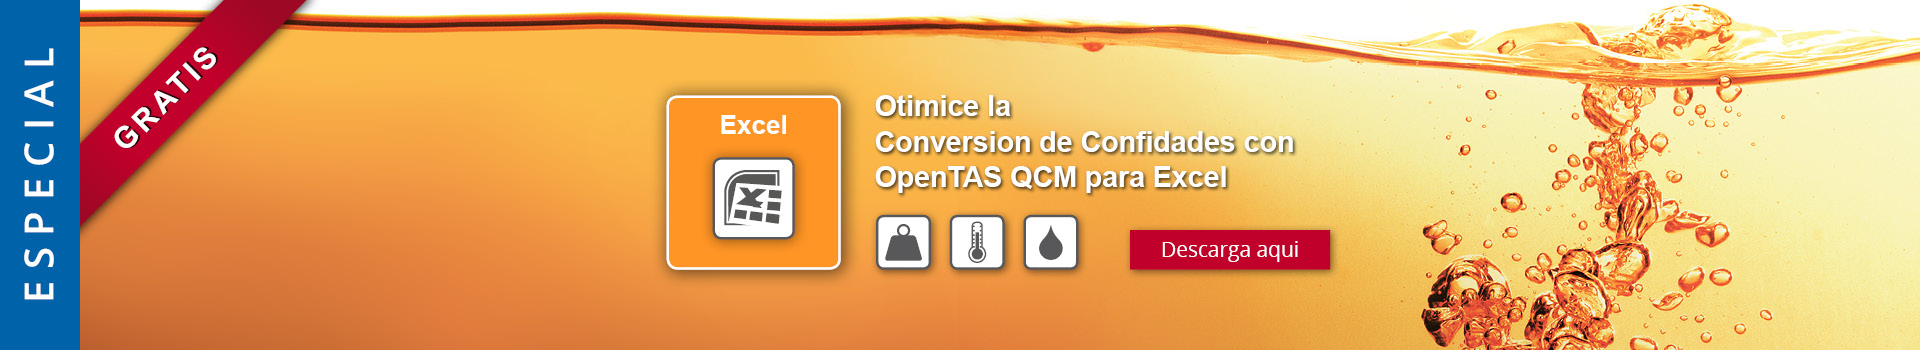 Open-TAS-QCM-Add-in-ES